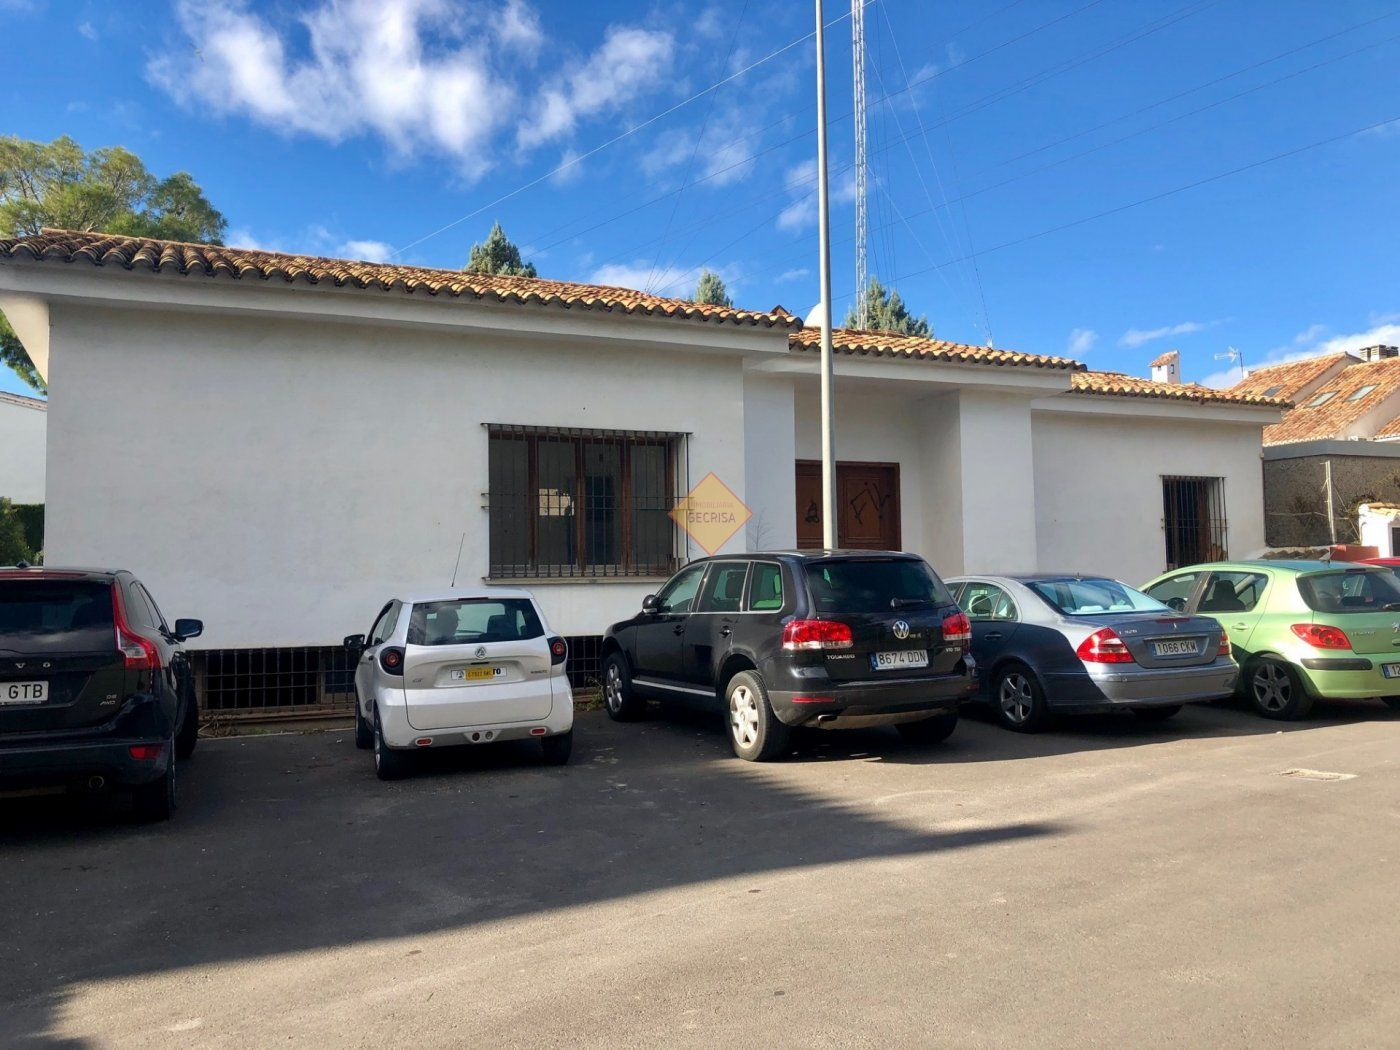 Local Comercial  Rocafort ,villas de rocafort. Local ideal para diferentes proyectos